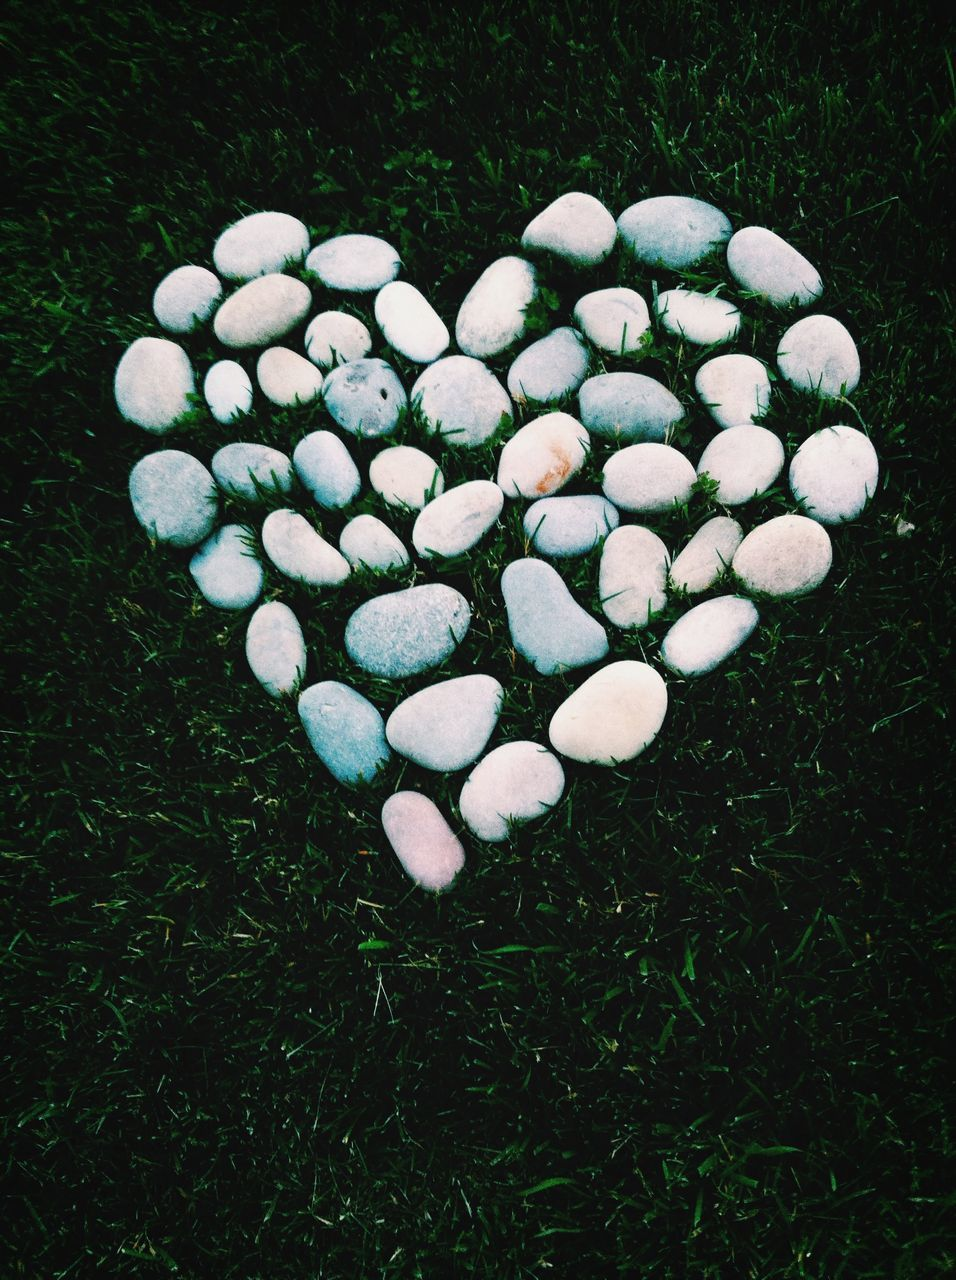 Heart made of pebbles